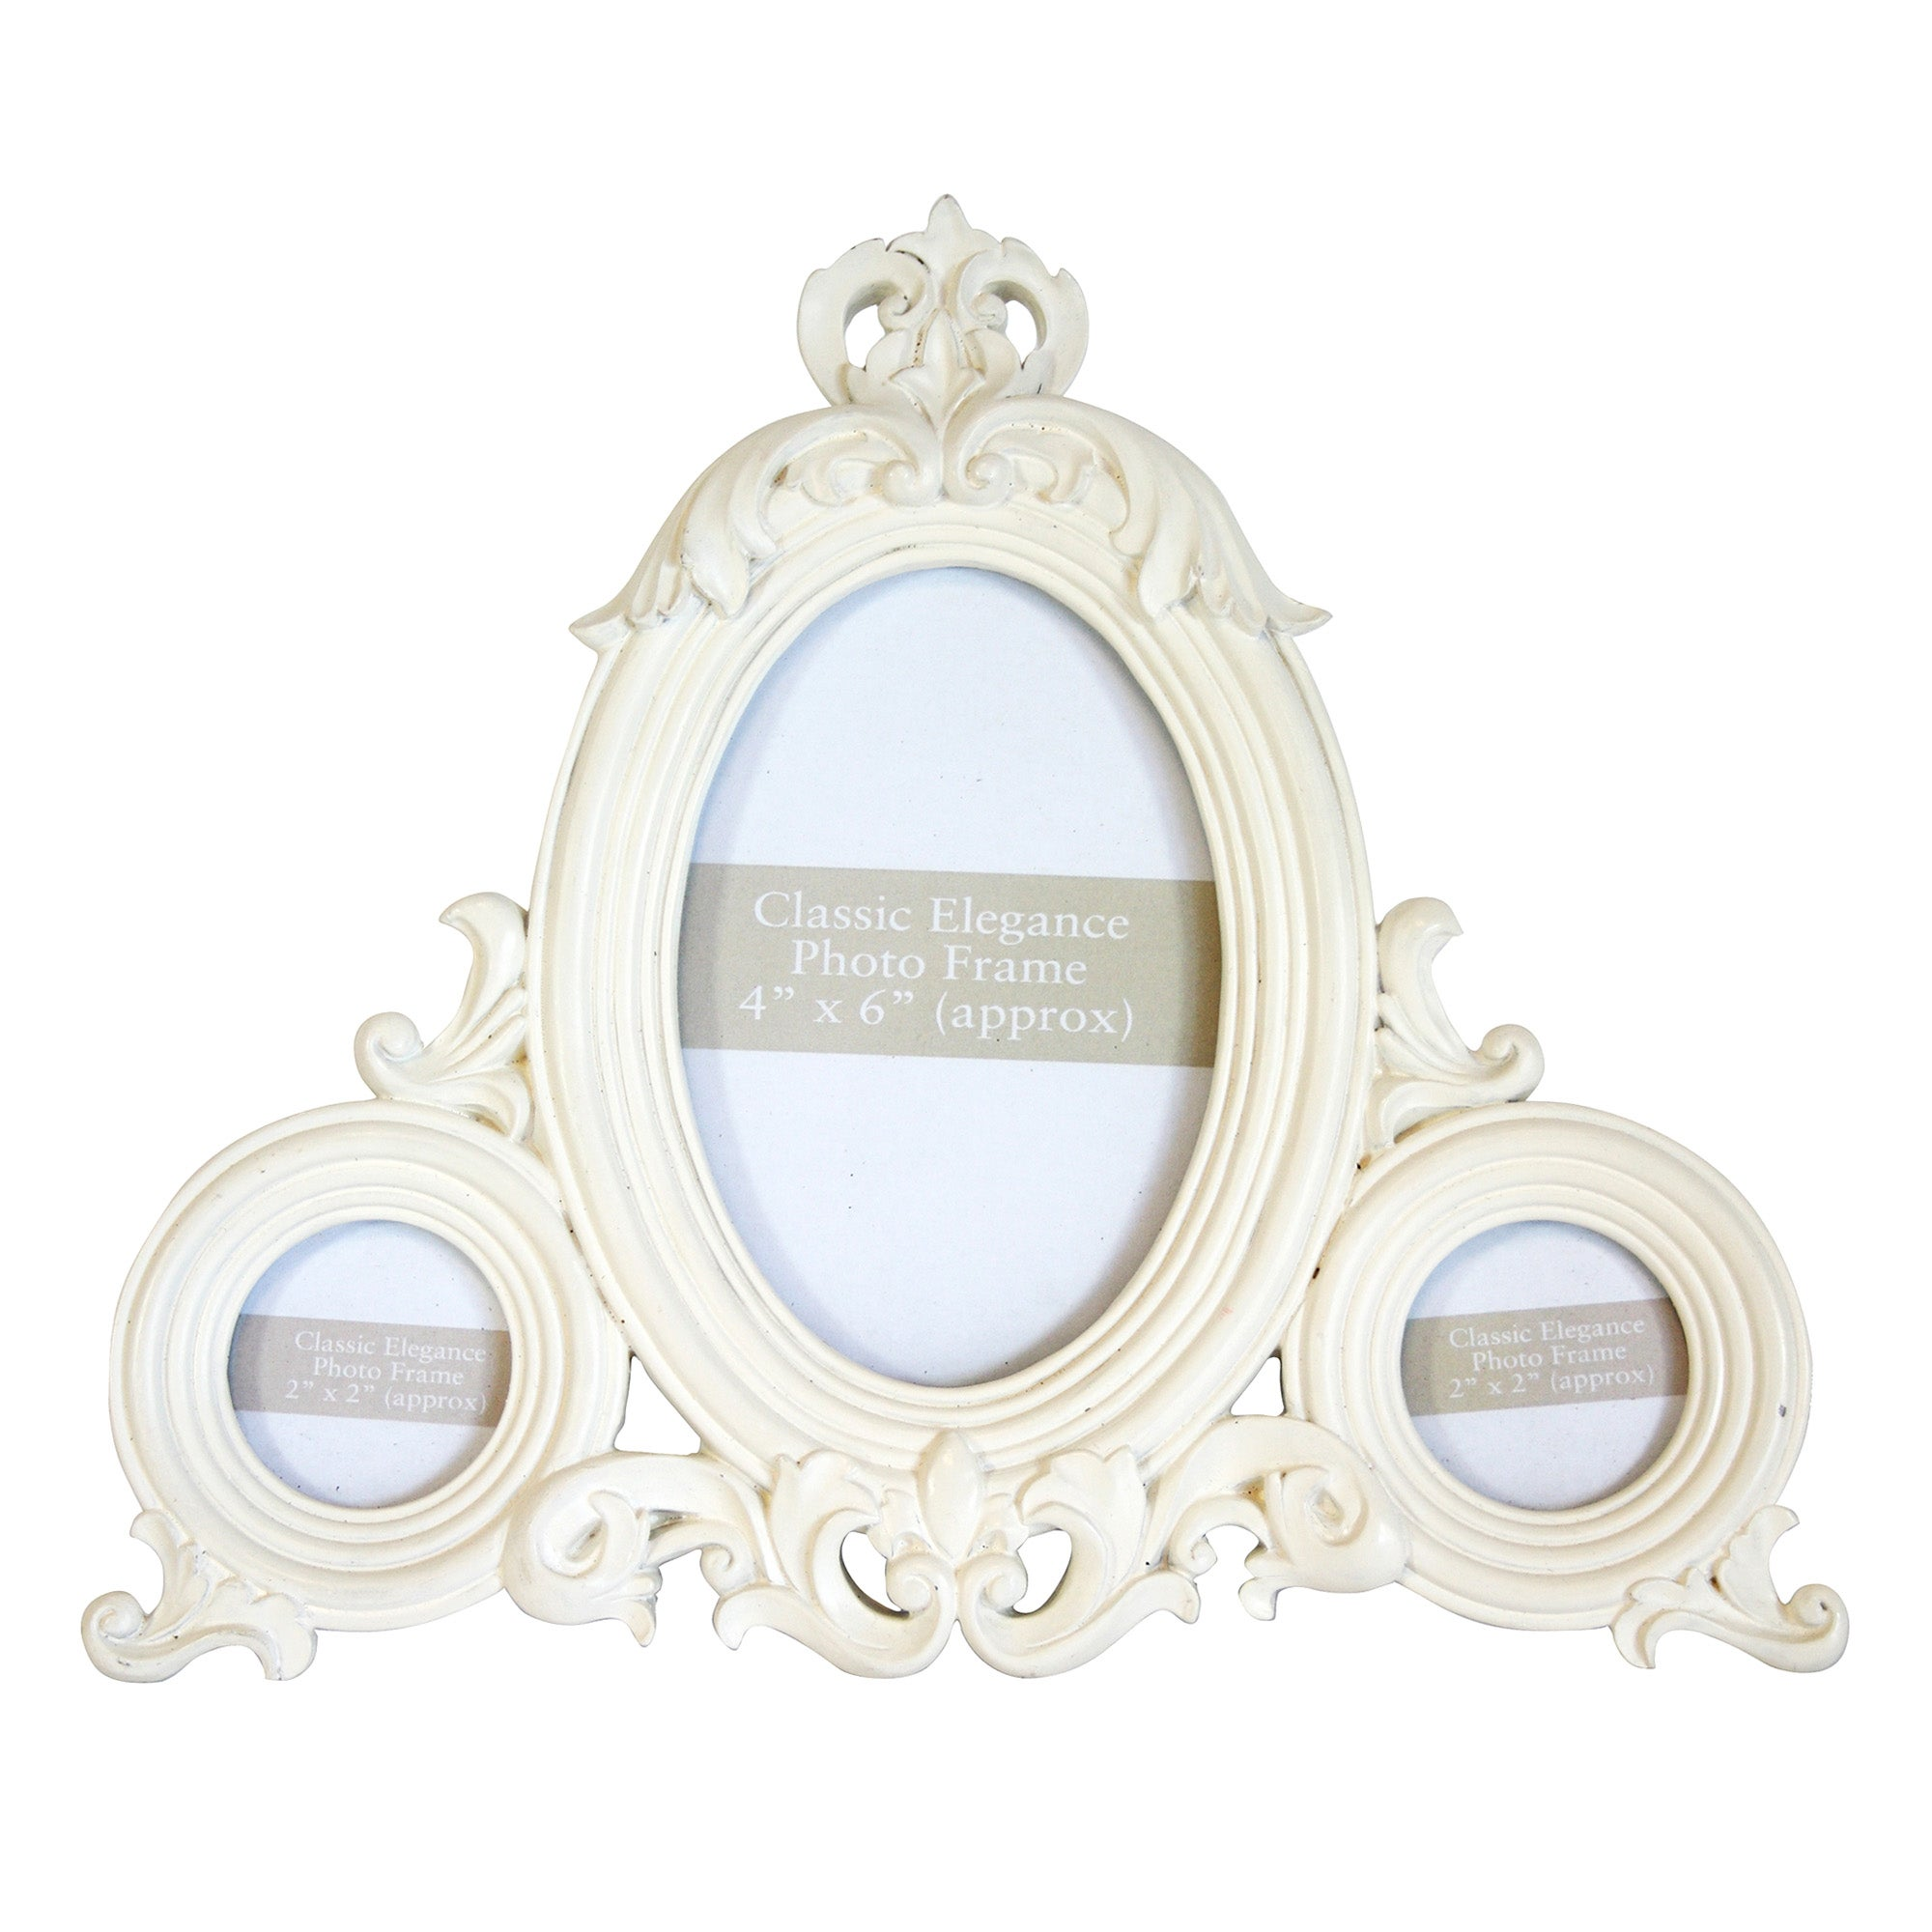 Classic Elegance Collection Triple Photo Frame